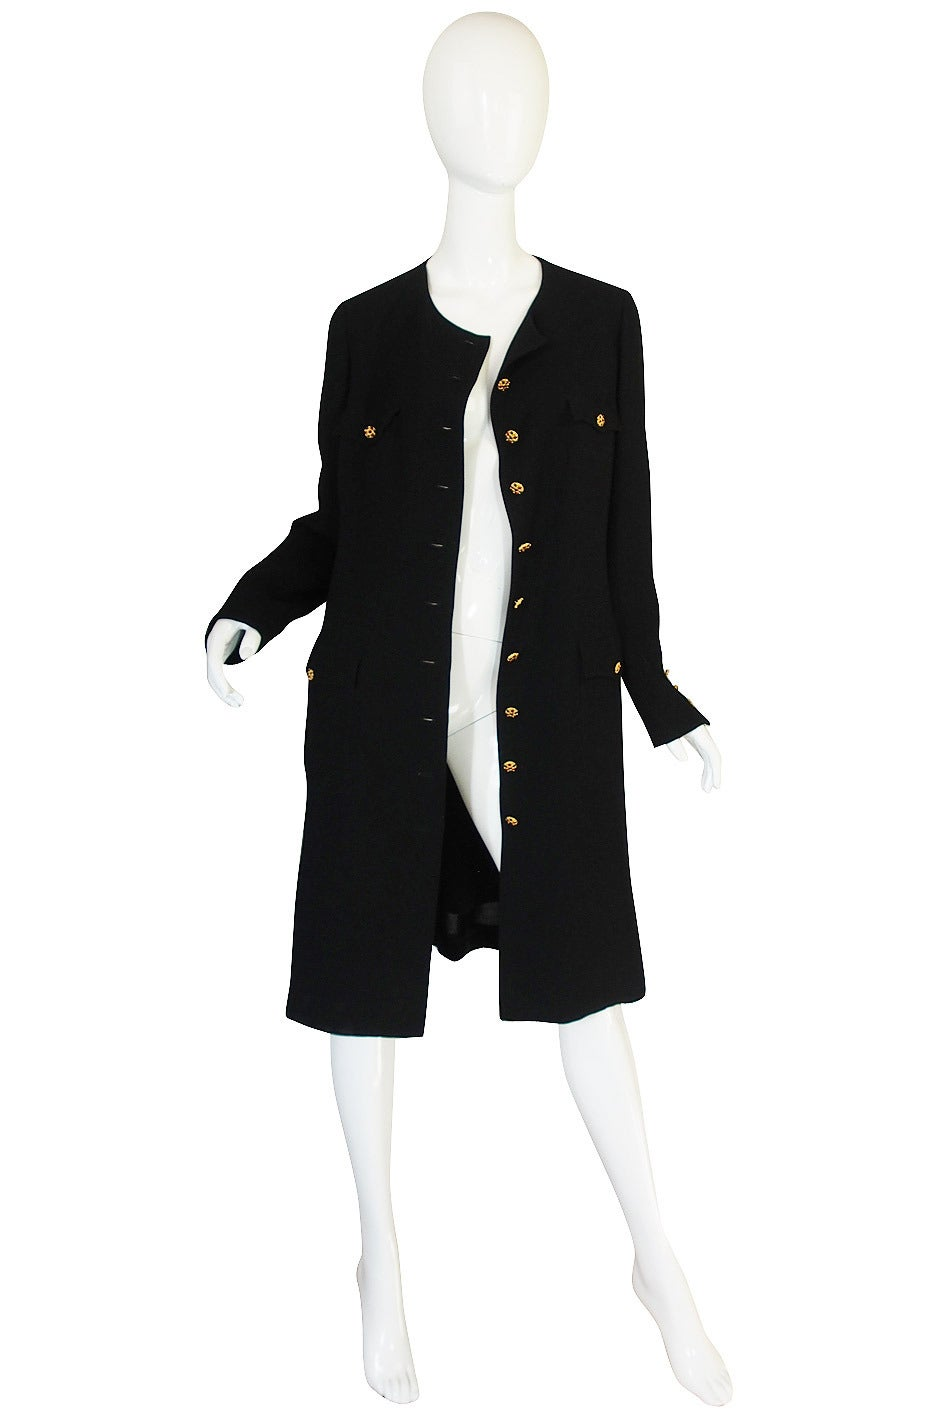 96A Runway Chanel Coat Dress w Cabochon Buttons 3